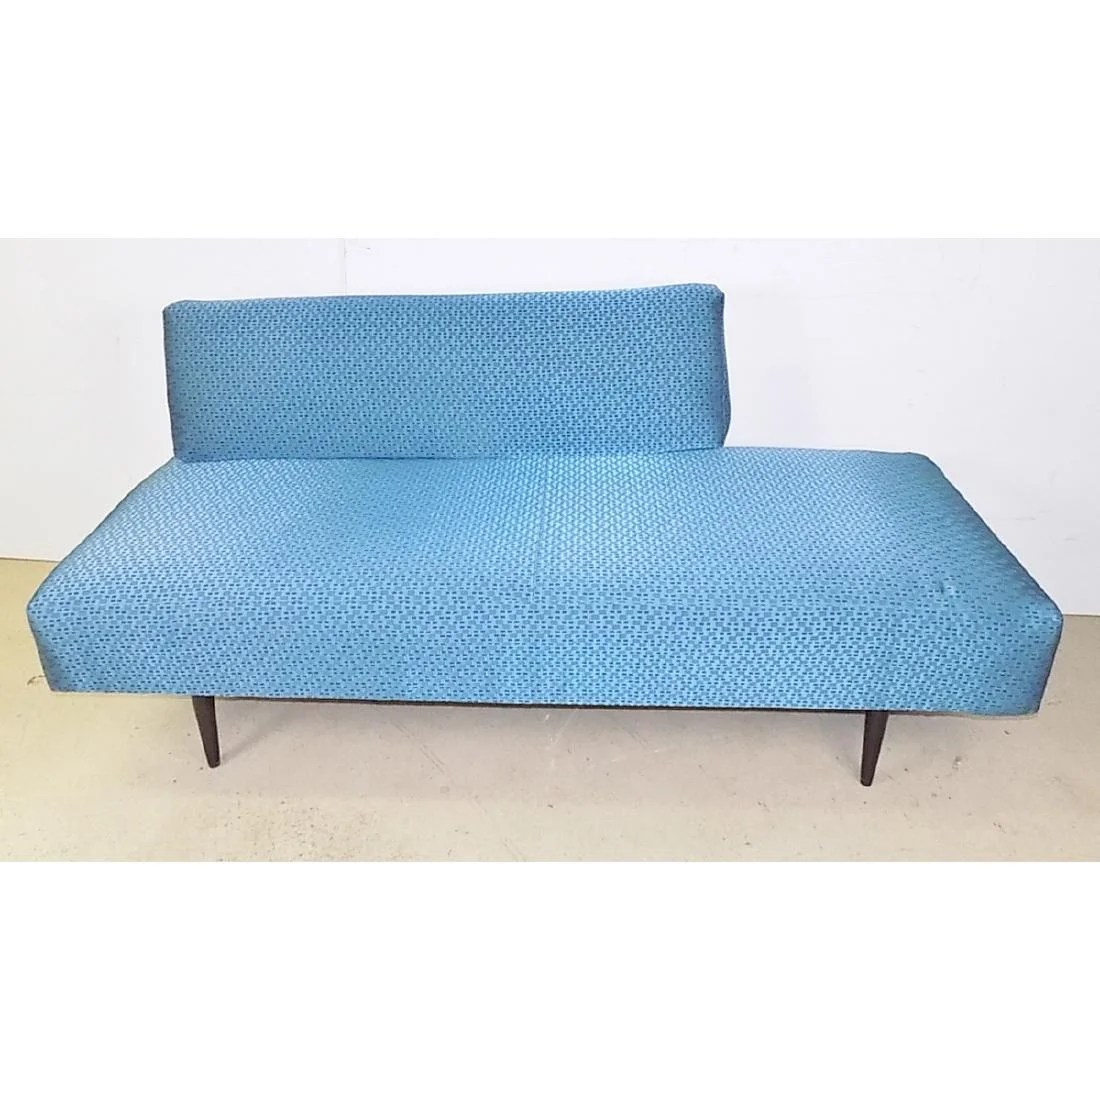 Sofa X Long Mid Century Sofa On Liveauctioneers